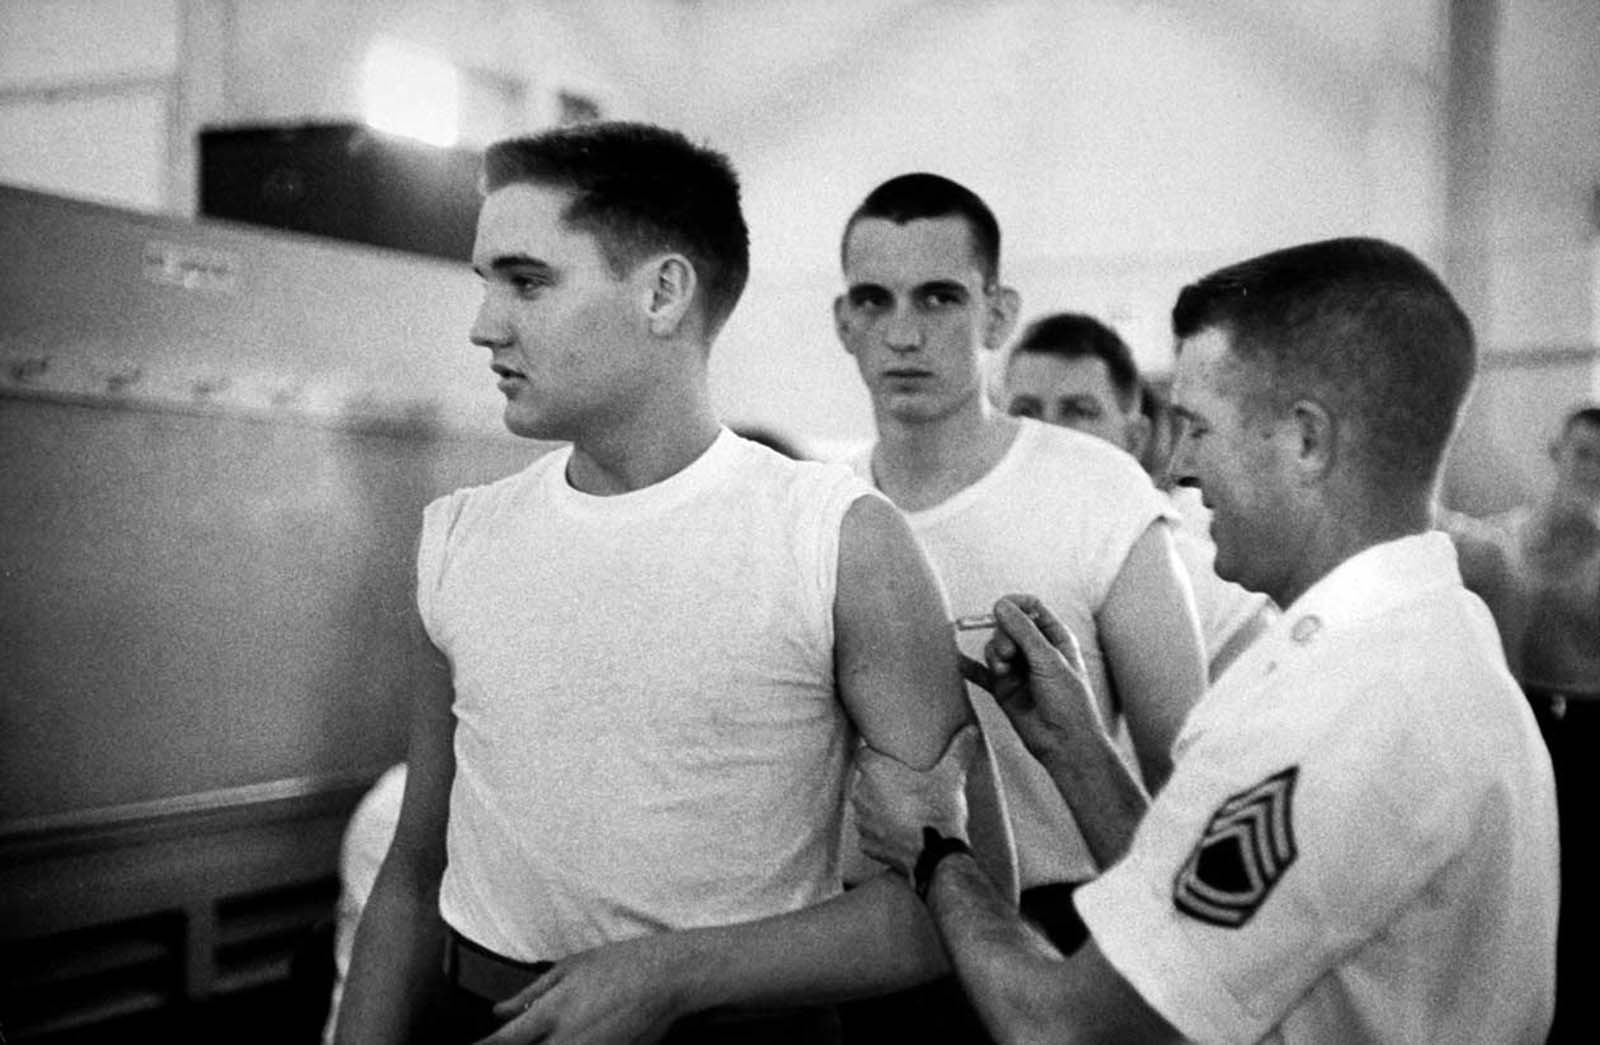 Presley in t-shirt, getting a shot from an Army doctor during his pre-induction physical at Kennedy Veterans Hospital.